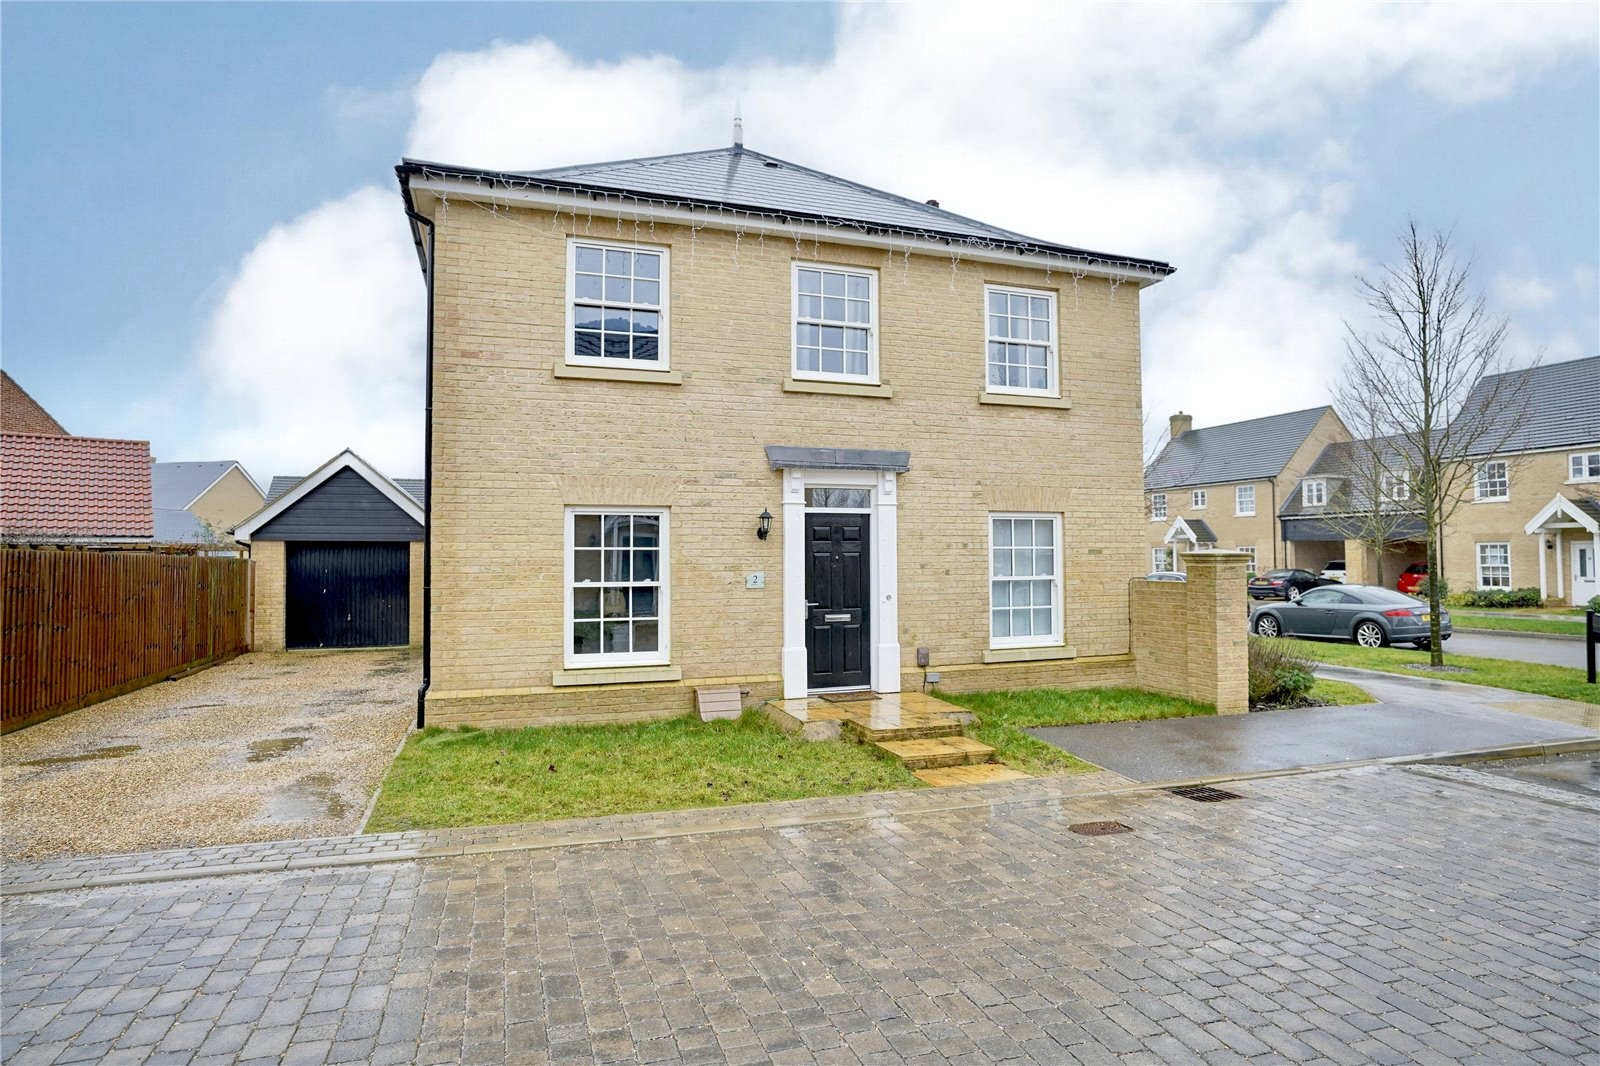 4 bed house for sale in Alconbury Weald, PE28 4XU - Property Image 1